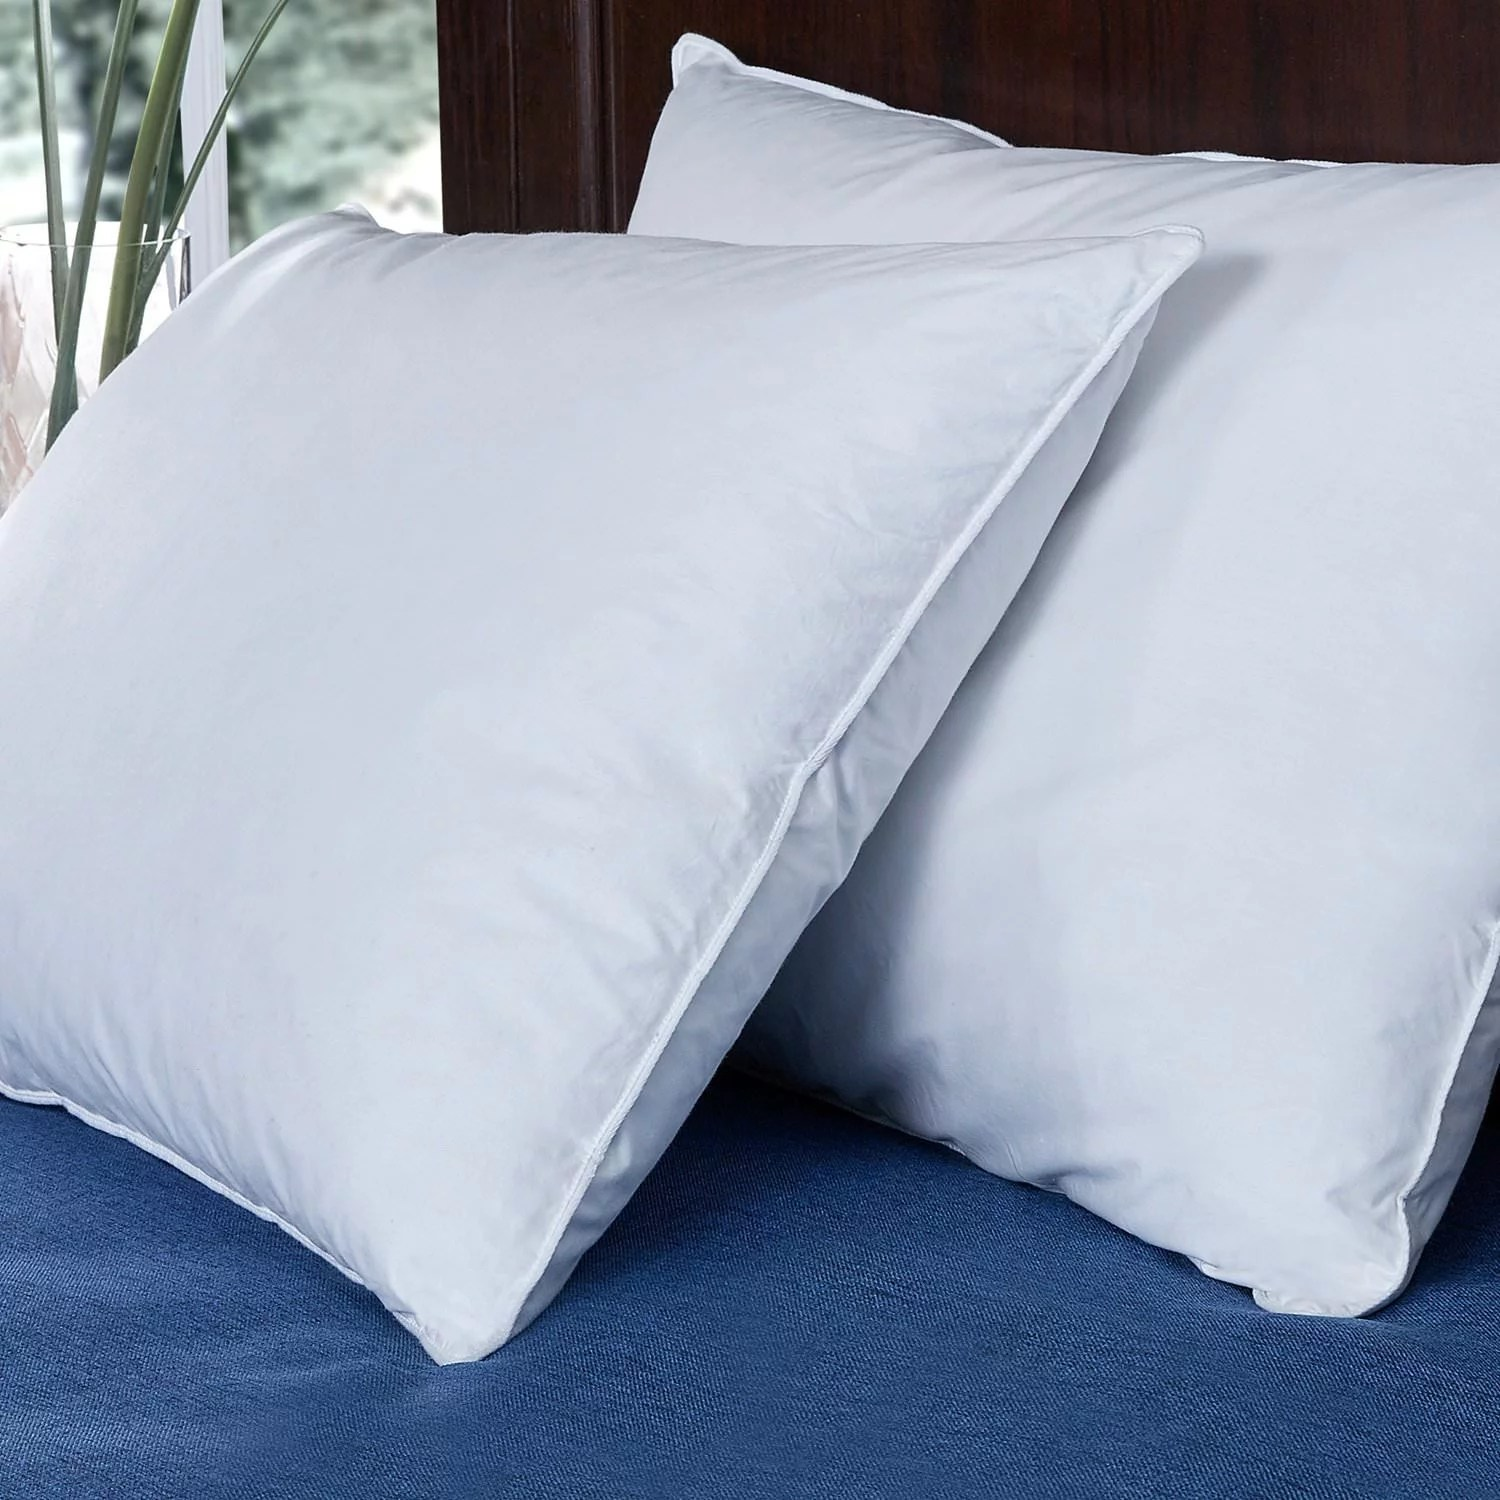 Standard Bed Pillows Puredown Down And Feather Bed Pillow White Set Of 2 Standard Queen Size